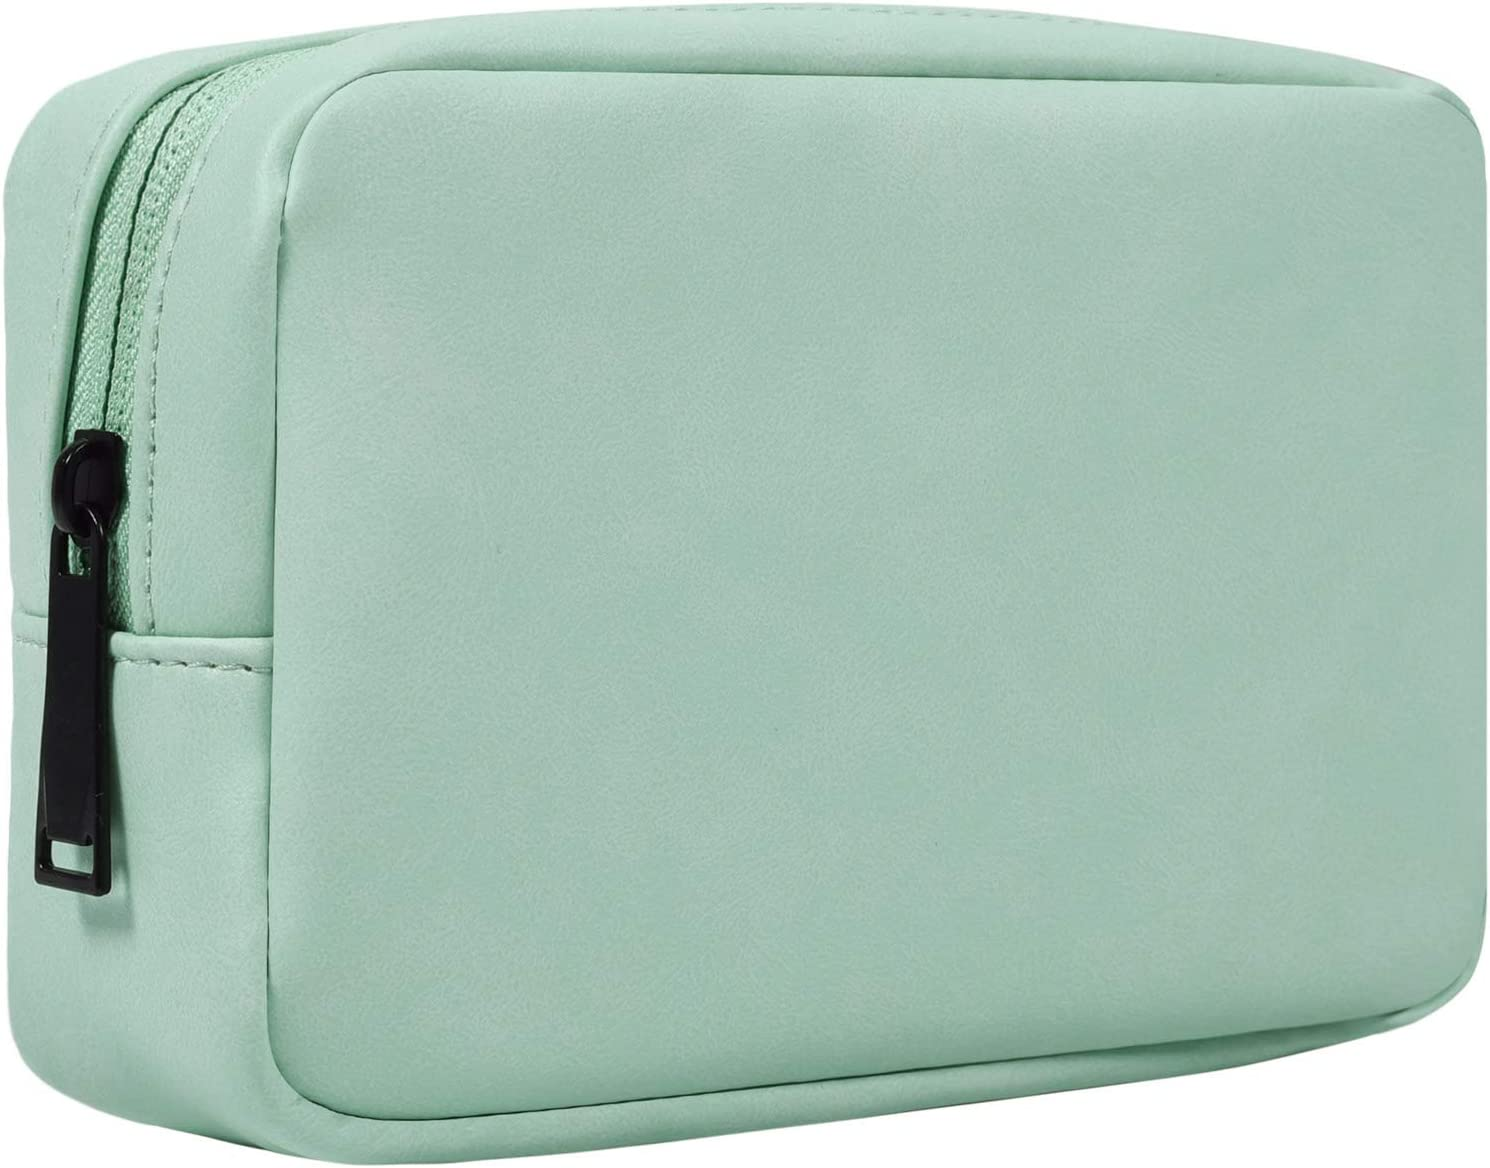 Electronics Organizer Travel Case, Electronics Accessories Cable Carrying Bag, Accessories Bag Organizer Power Bank Case for Hard Drives Cables Charger SD Memory Cards Earphone Pen – Mint Green